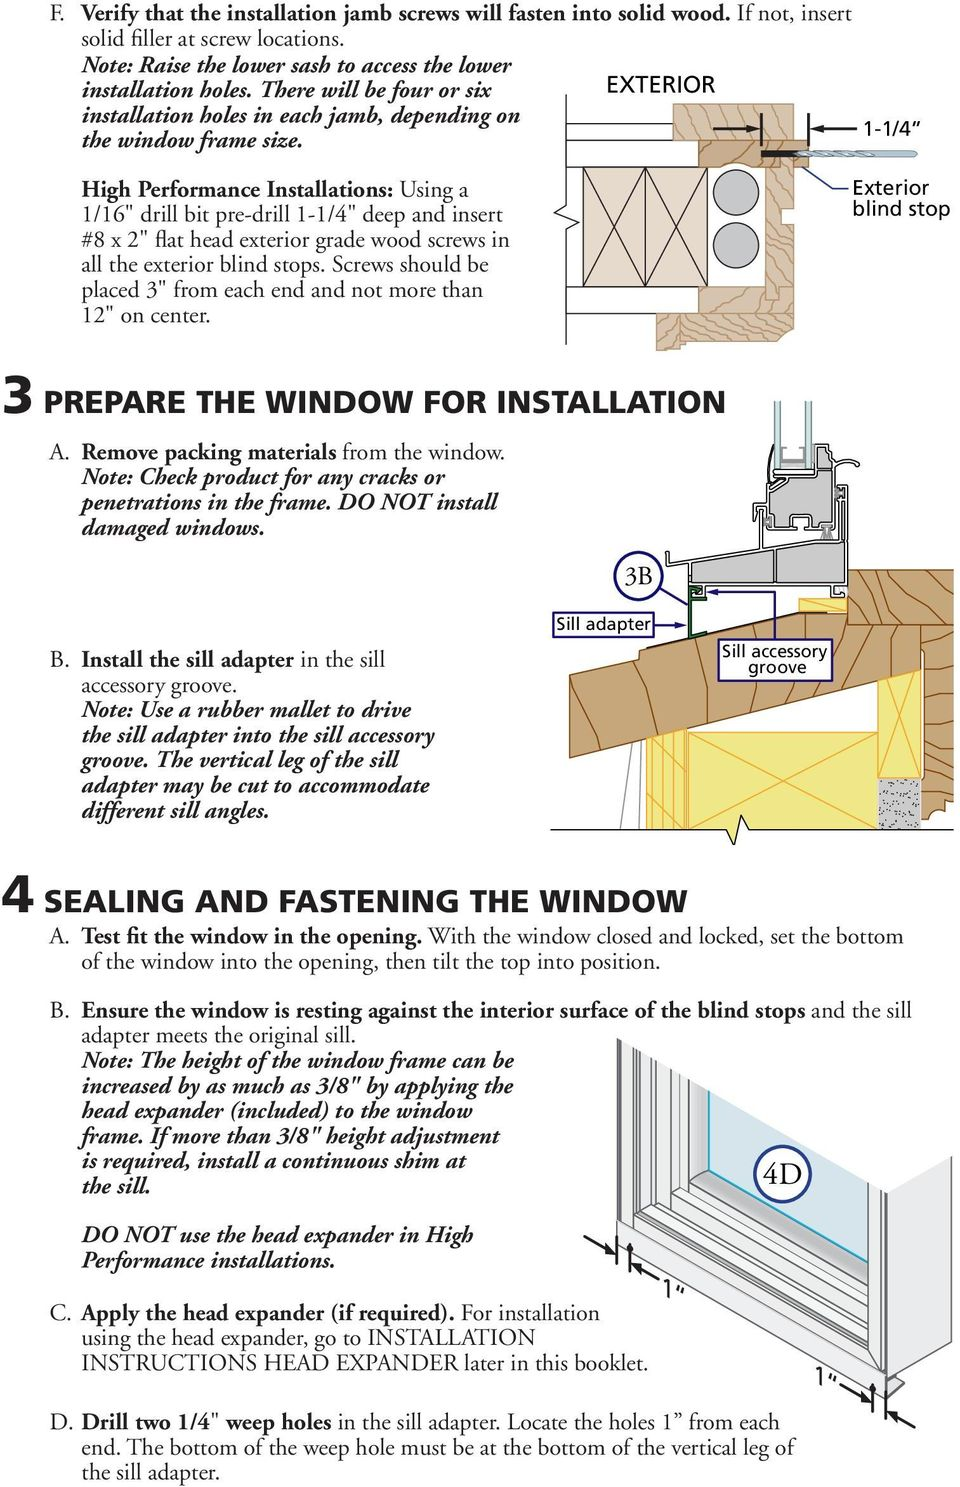 Remove packing materials from the window. Note: Check product for any cracks or penetrations in the frame. DO NOT install damaged windows. B. Install the sill adapter in the sill accessory groove.